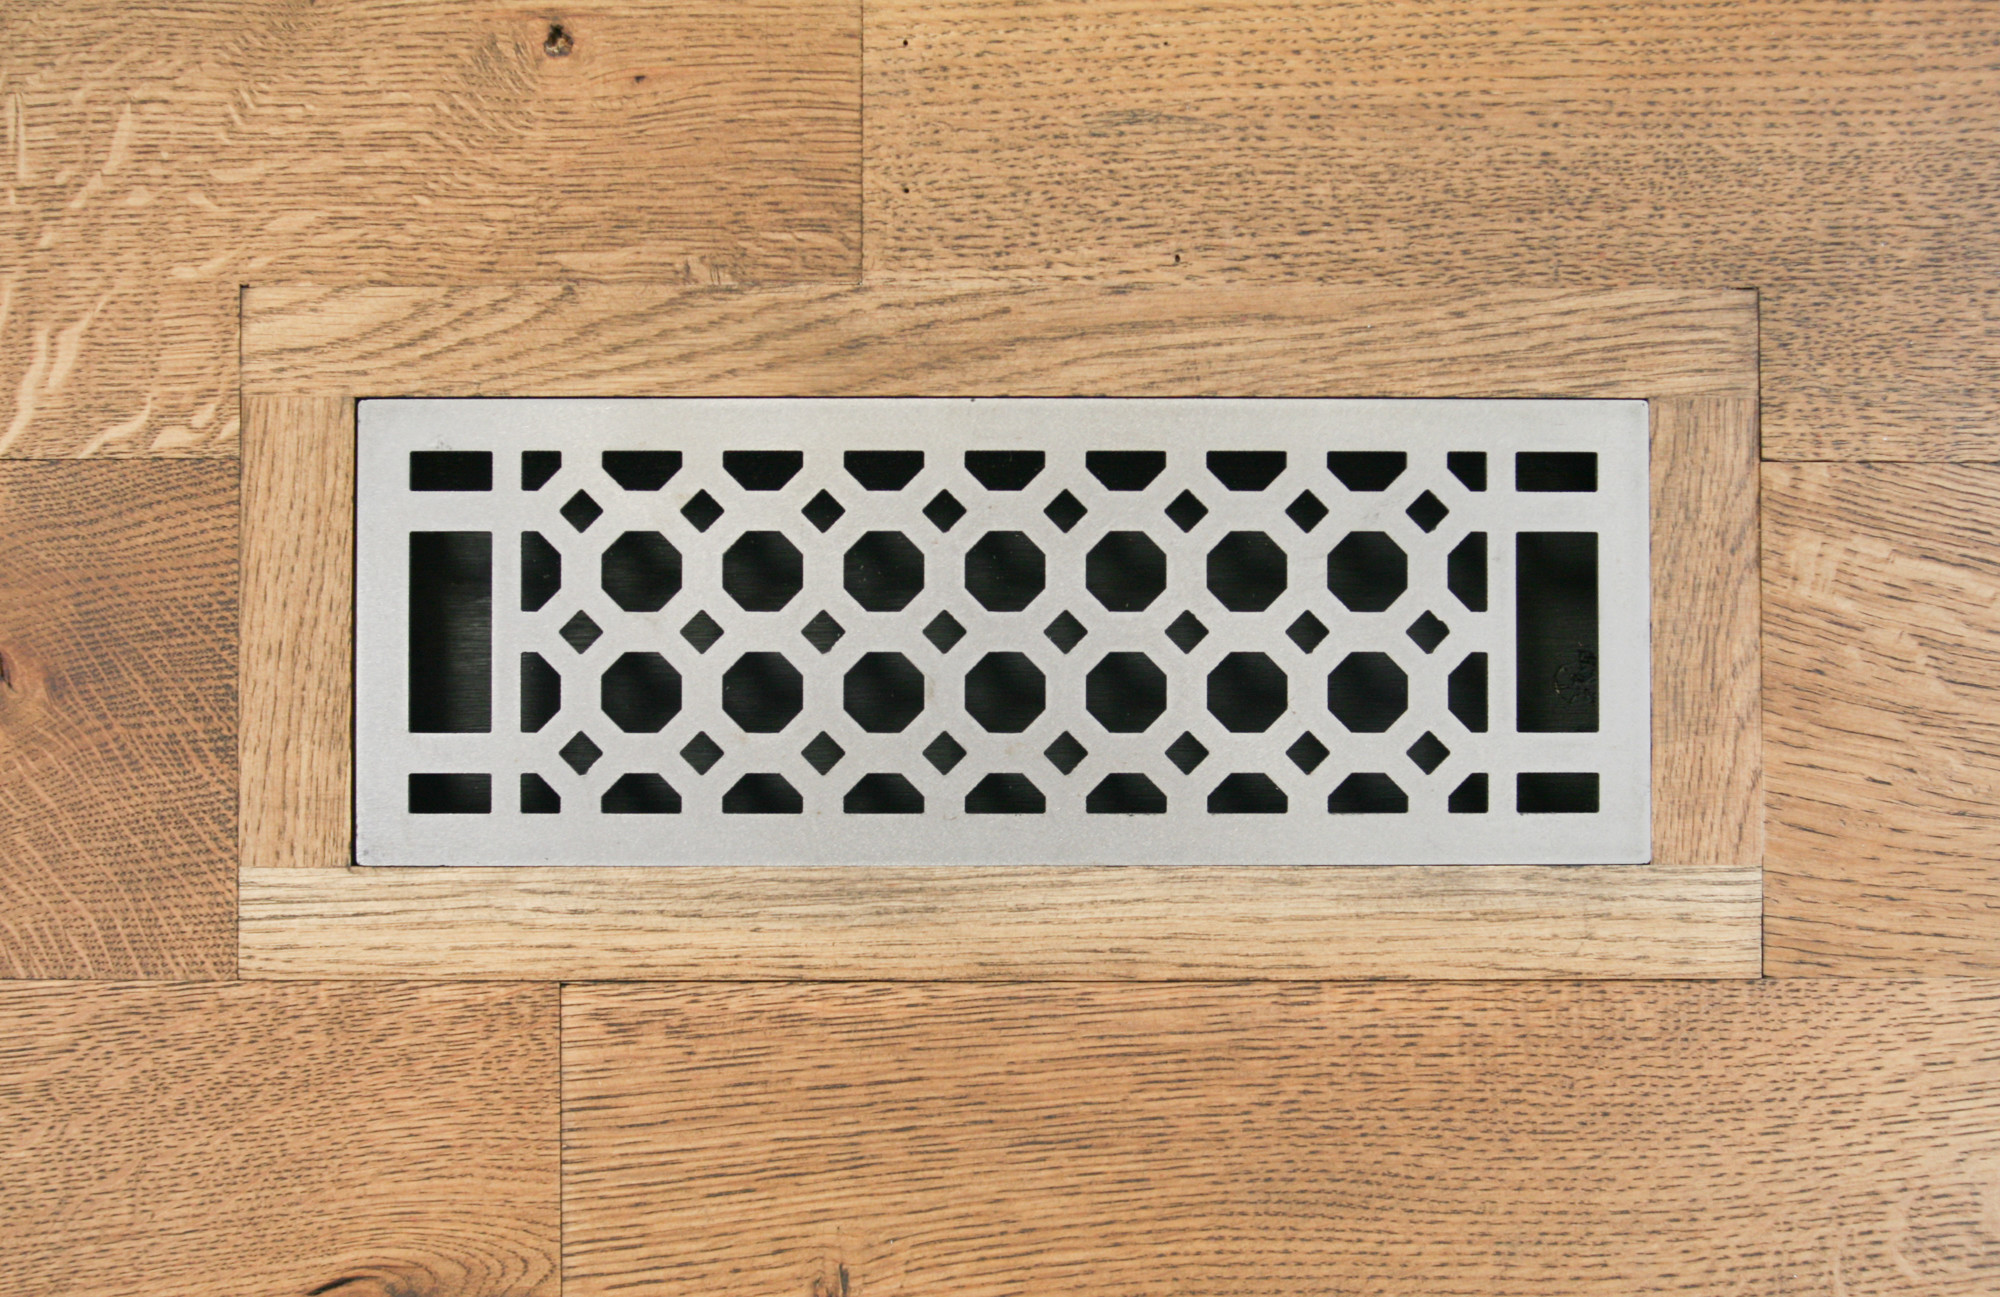 Eternal Octagon Vent Register Flush Mount Carbon Steel